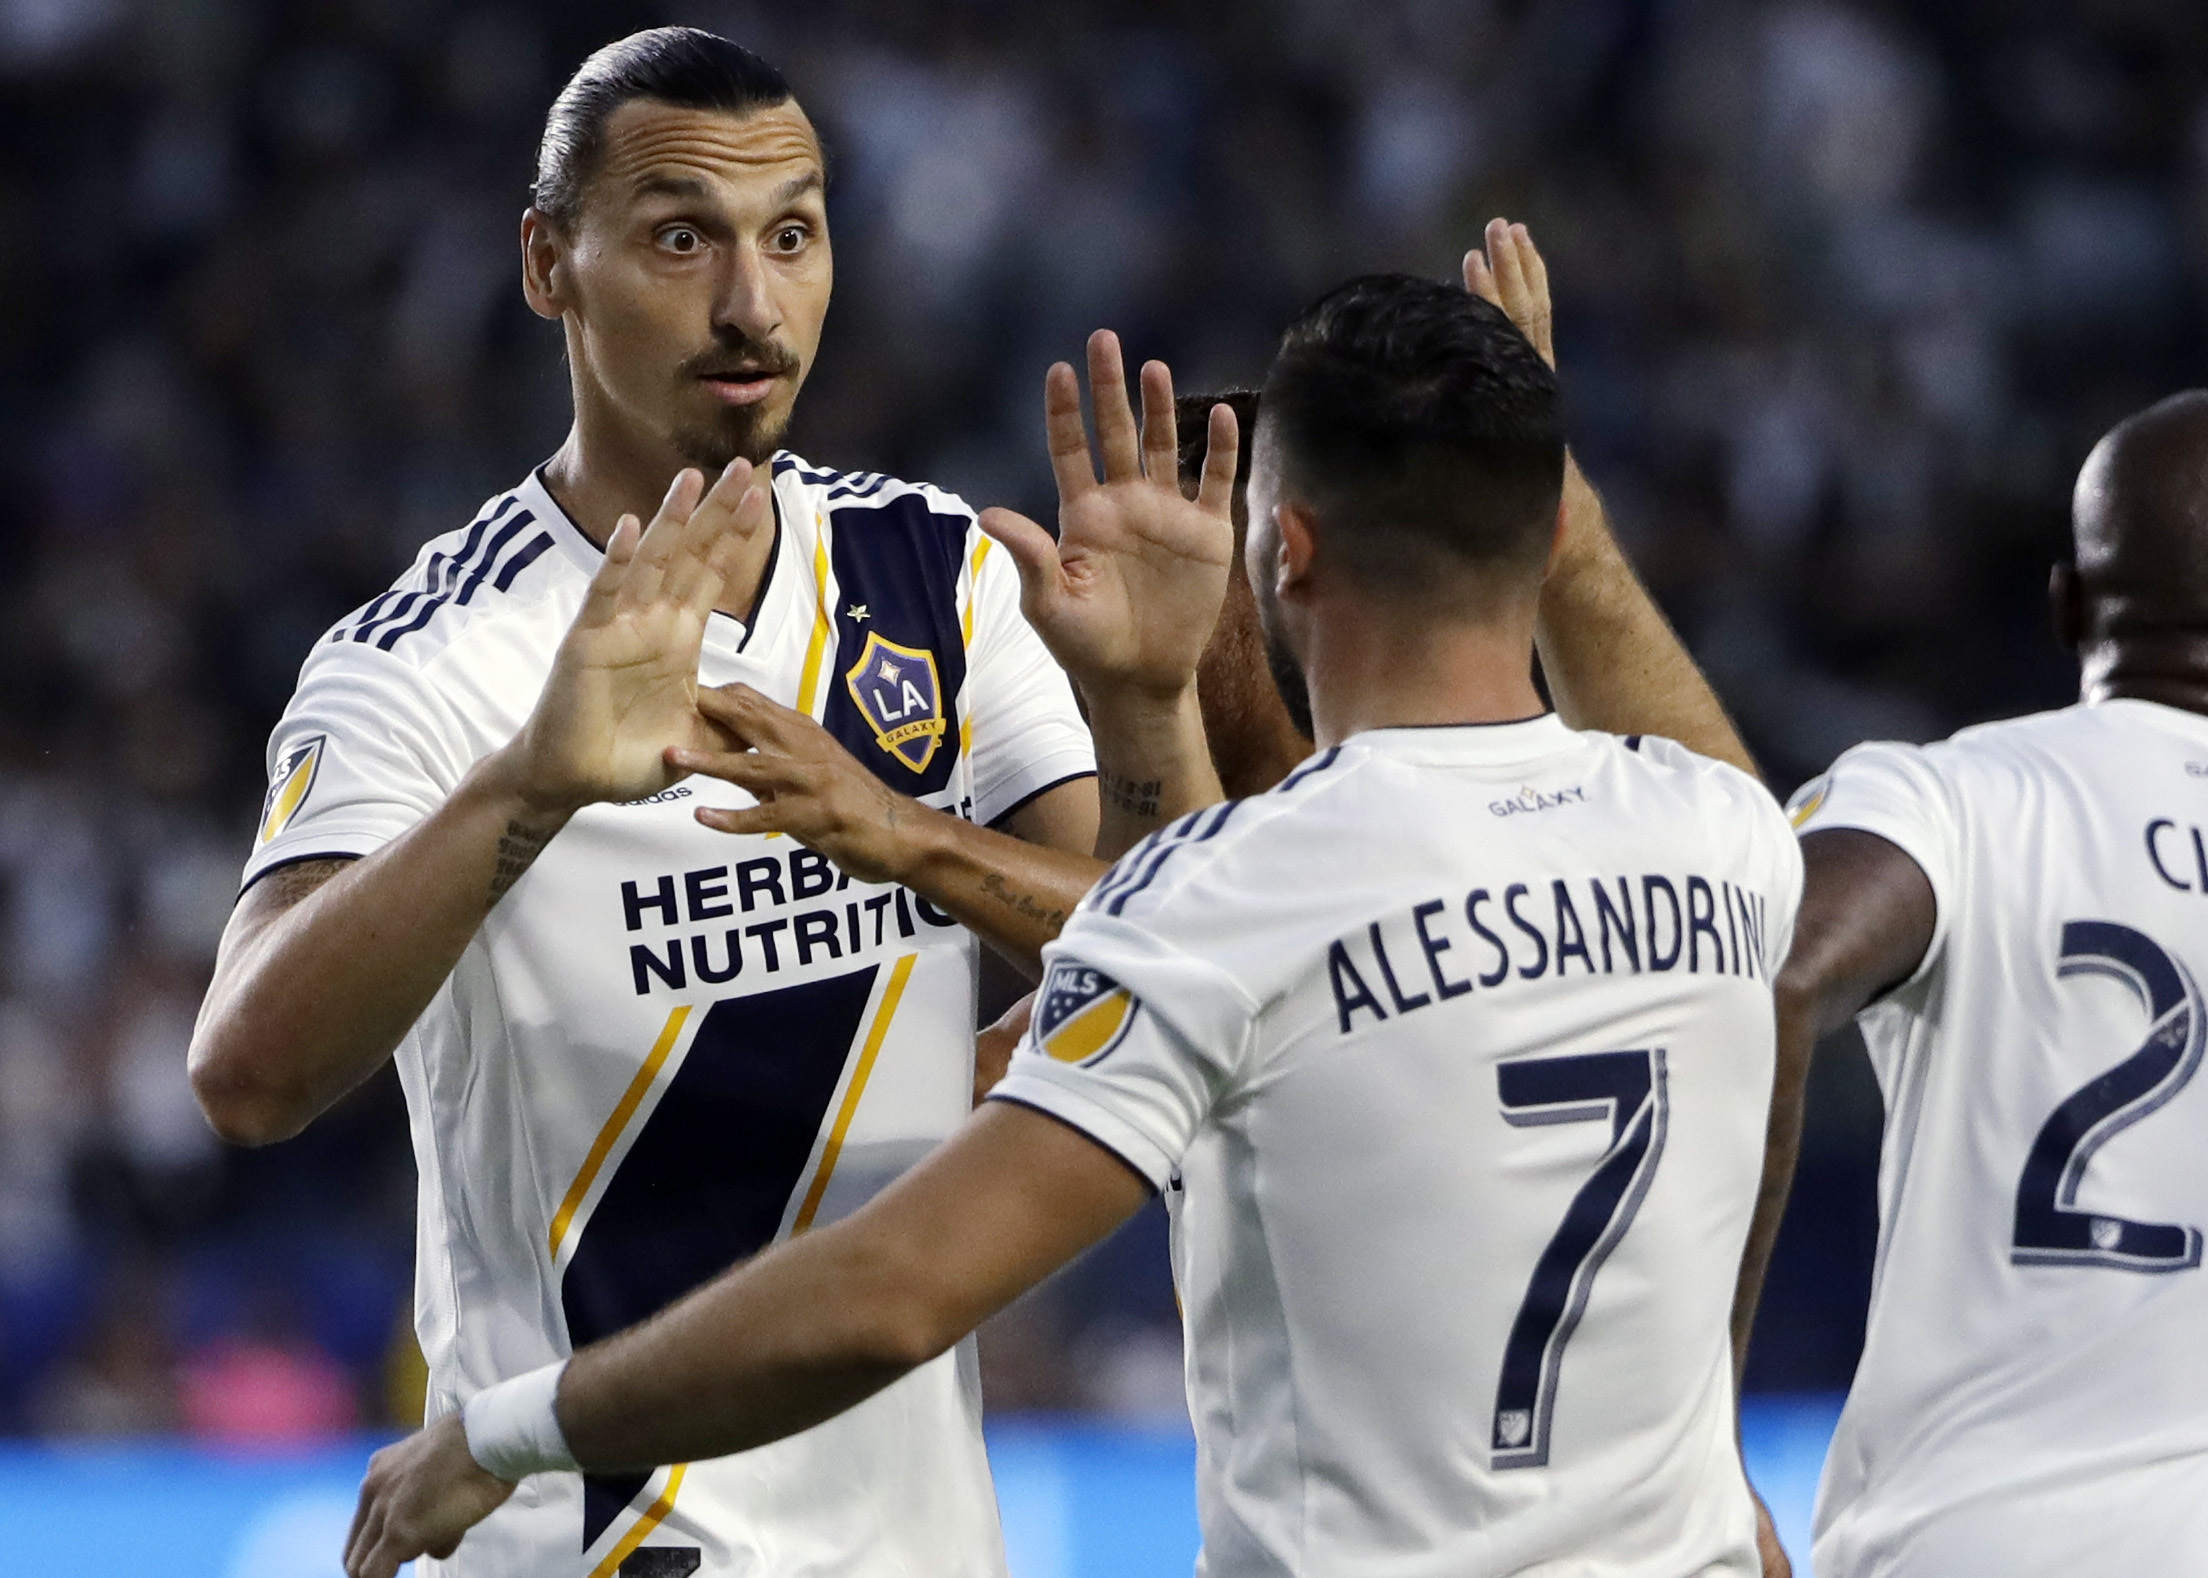 LA Galaxy midfielder Romain Alessandrini (7) celebrates his goal with teammate Zlatan Ibrahimovic during the first half of an MLS soccer match against Minnesota United, Saturday, Aug. 11, 2018, in Carson, Calif.